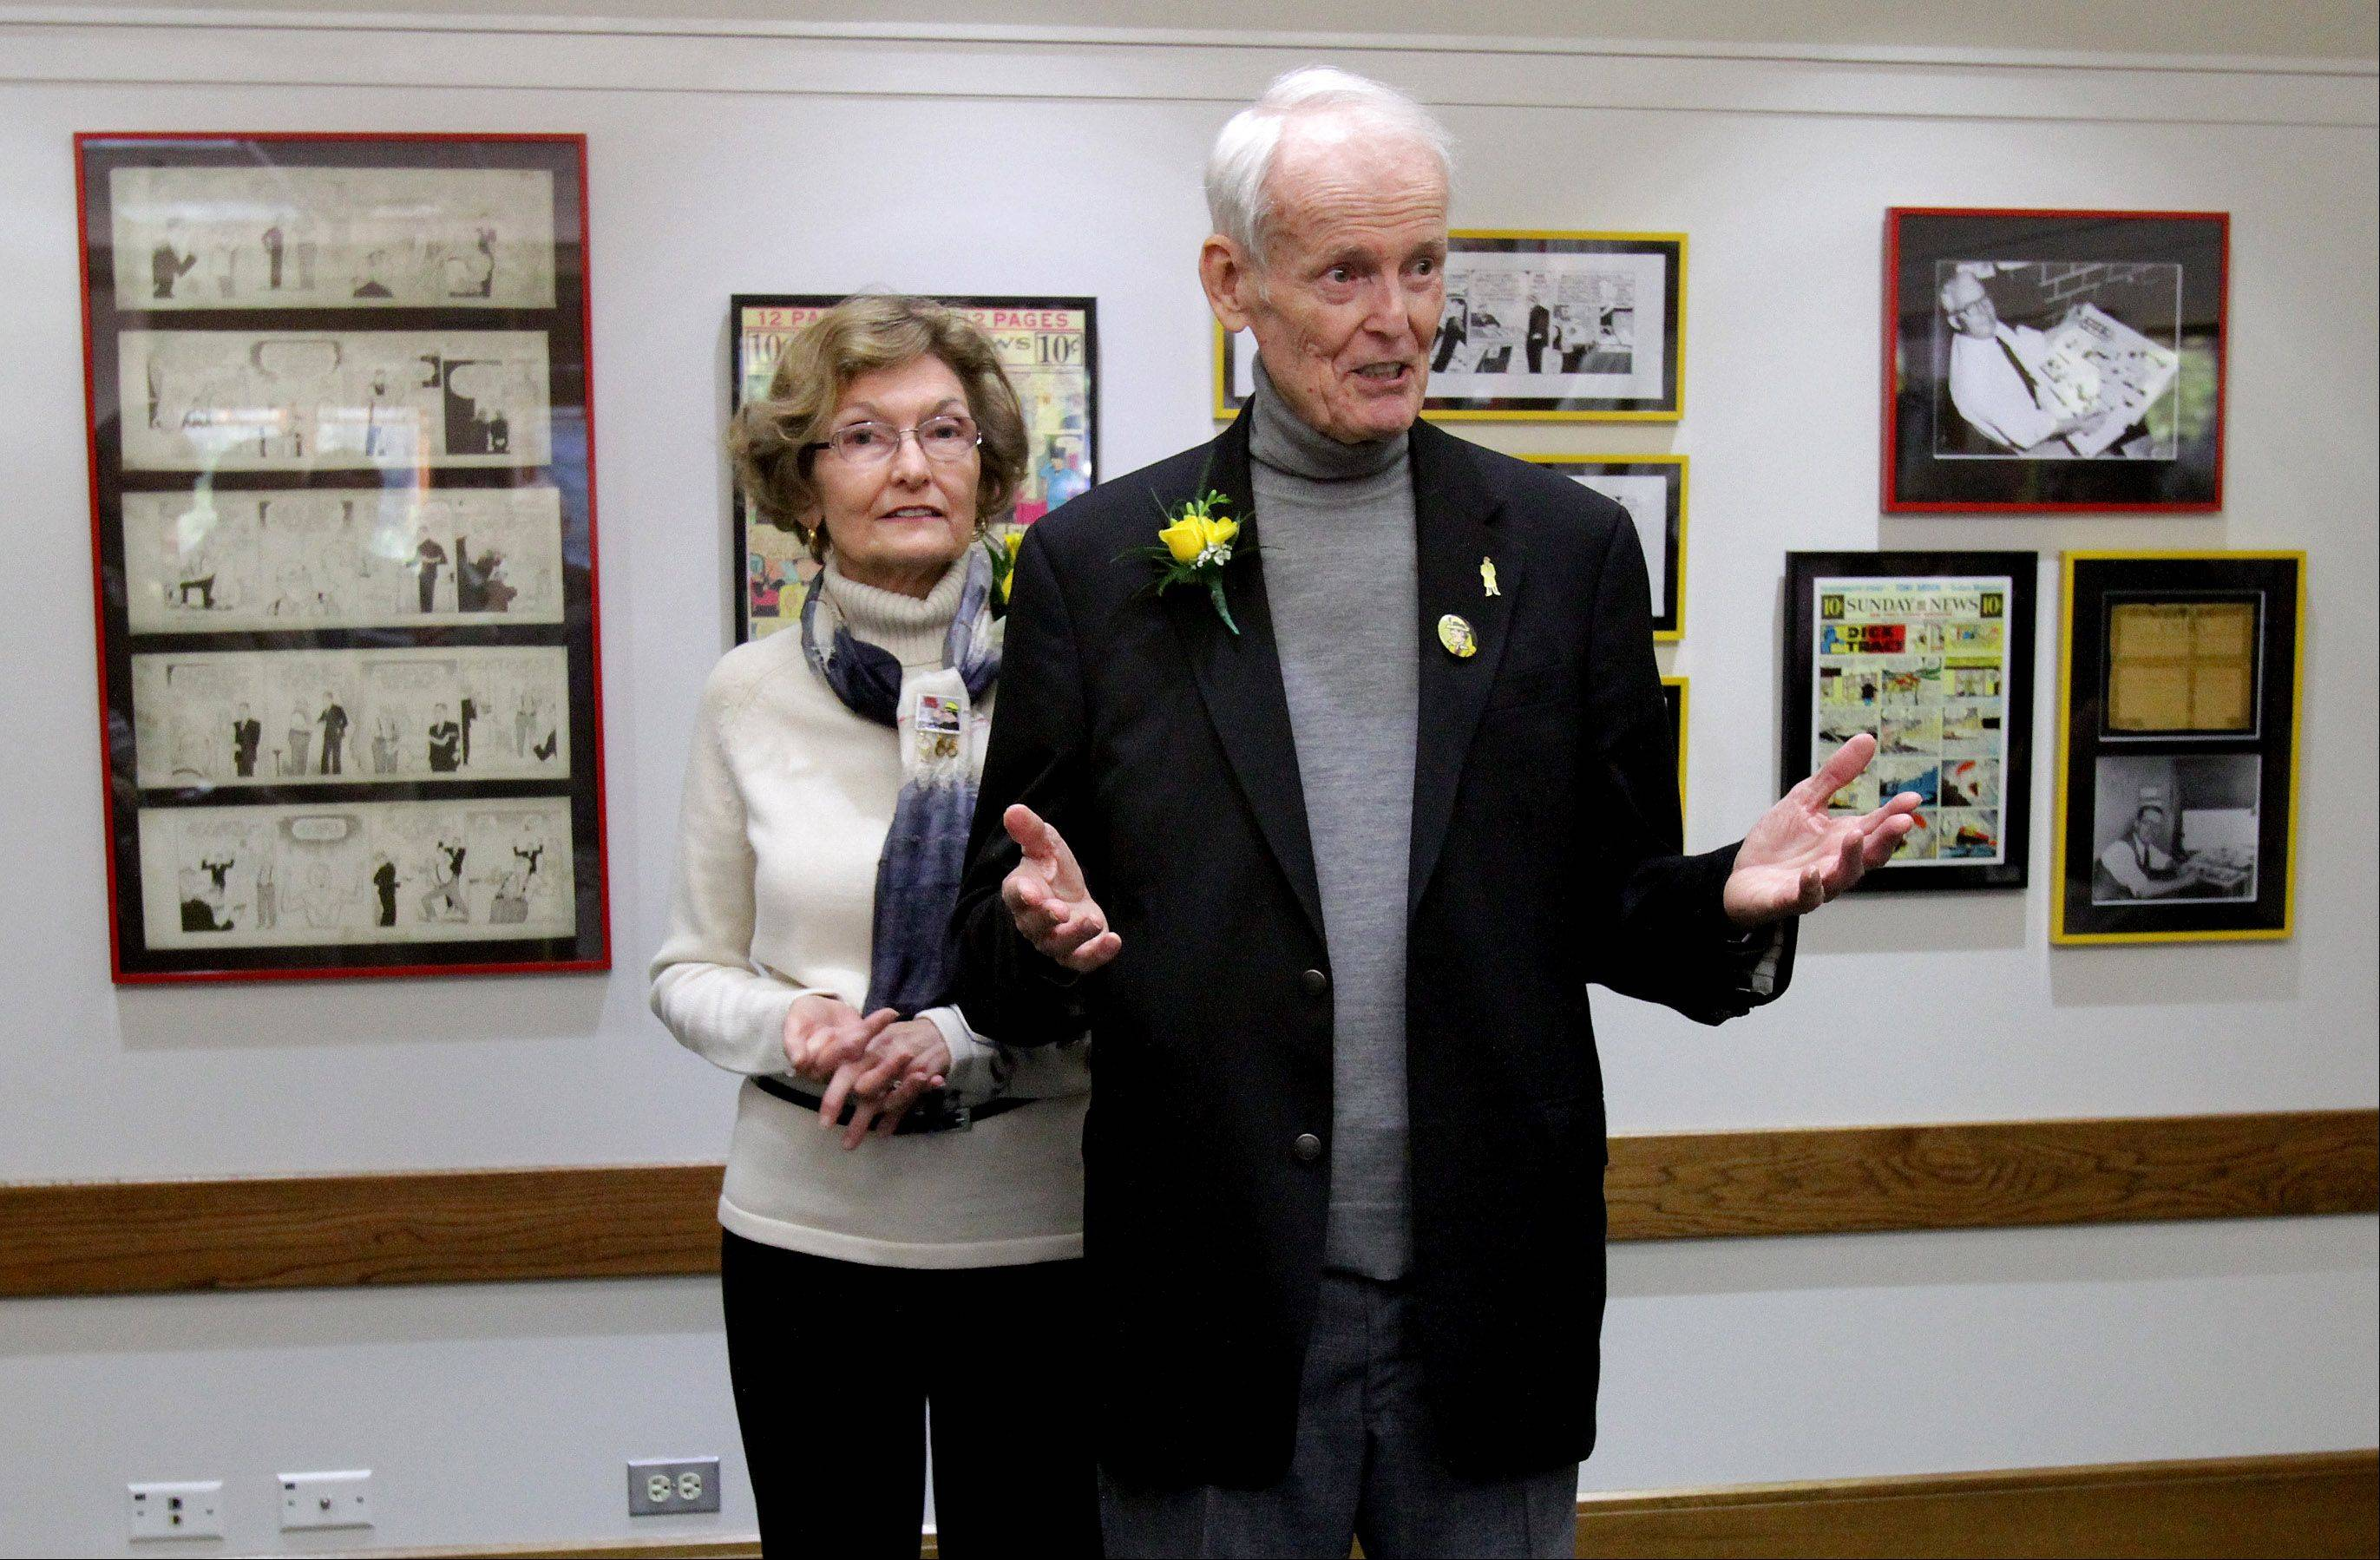 Dick Tracy artist Dick Locher, with his wife Mary, speaks at the dedication of the Century Walk Artist Gallery at the Naperville Township building Tuesday on the 80th birthday of Dick Tracy.